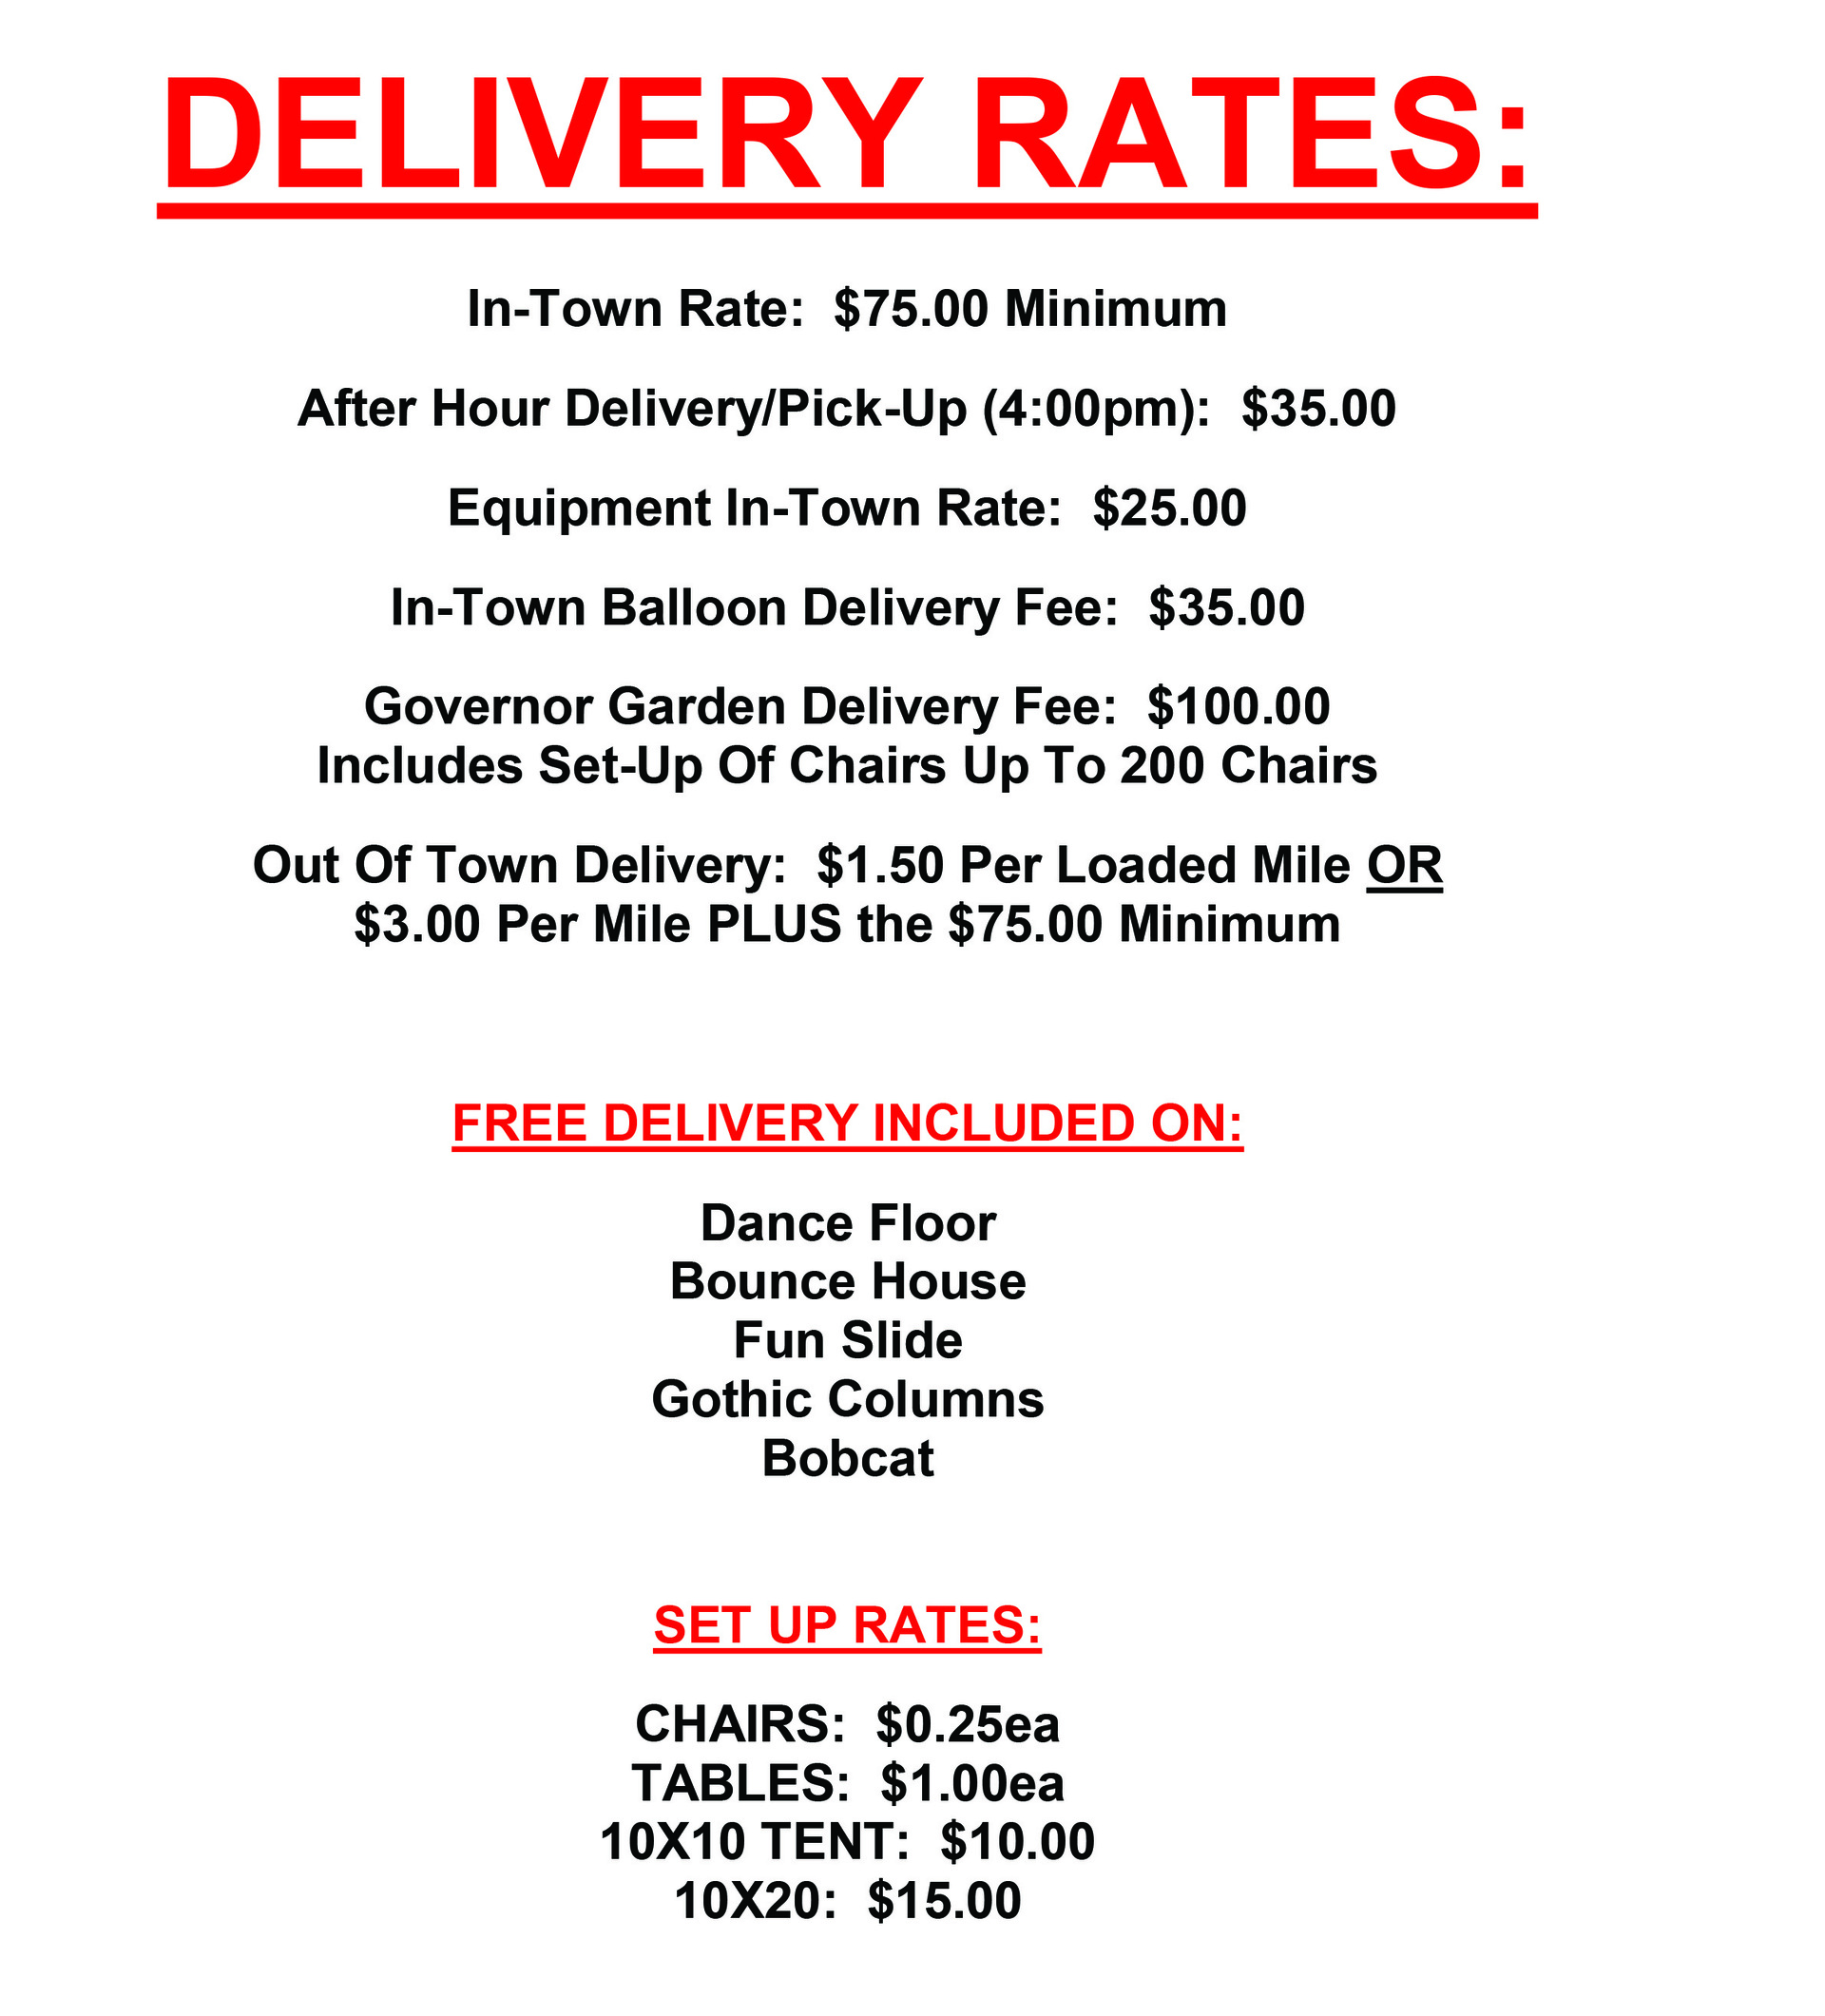 House of Bargains Delivery Rates